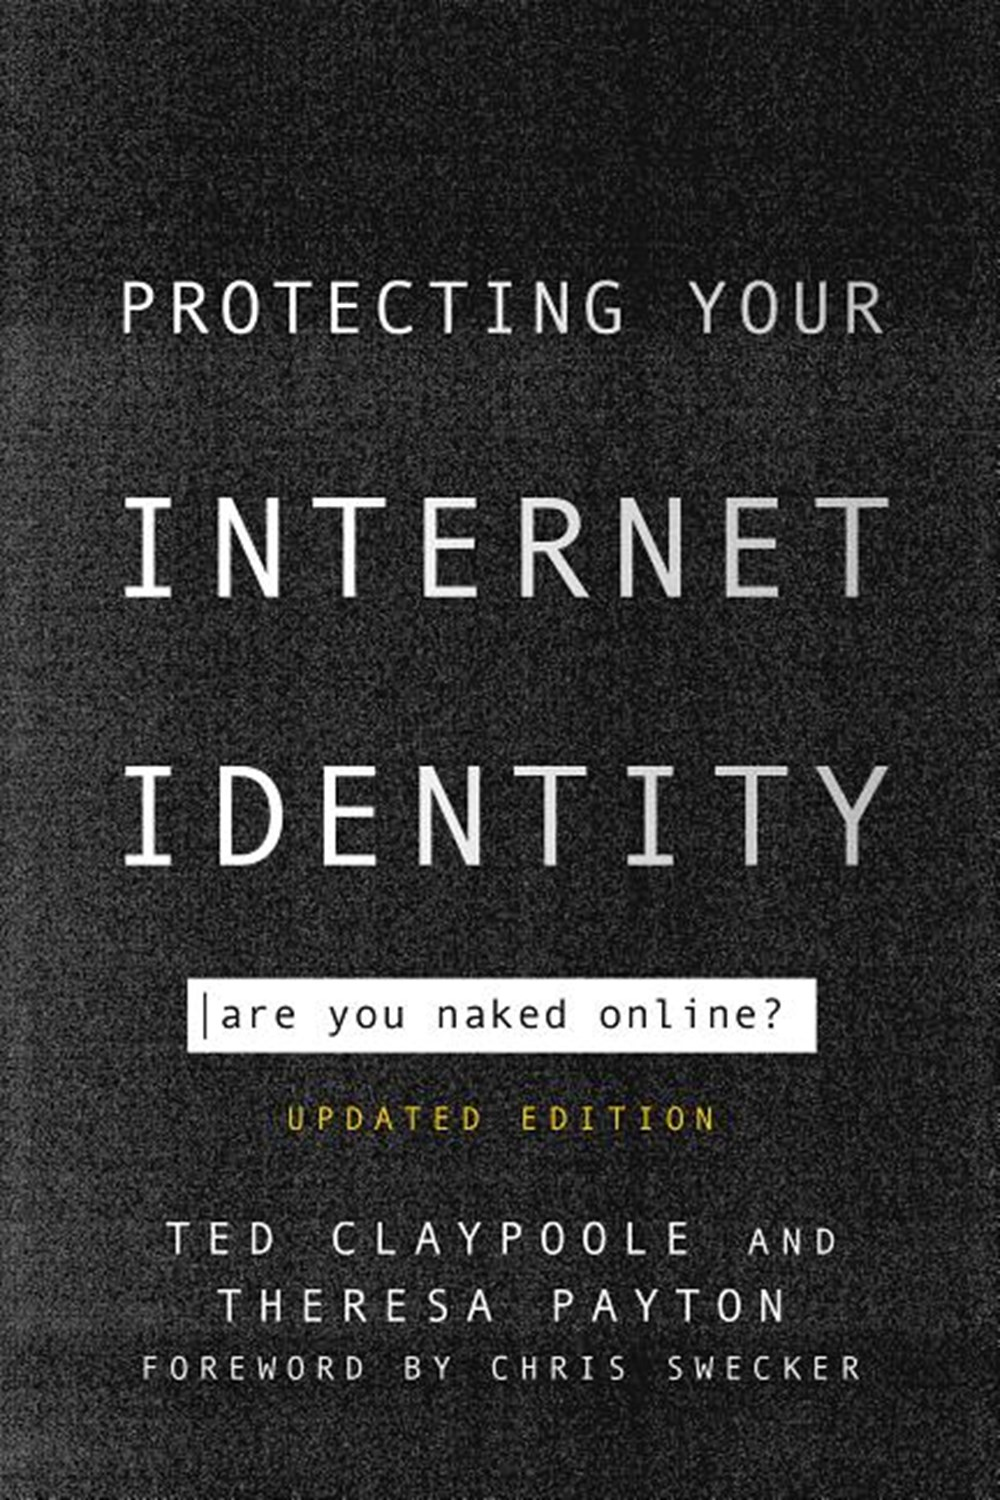 Protecting Your Internet Identity Are You Naked Online?